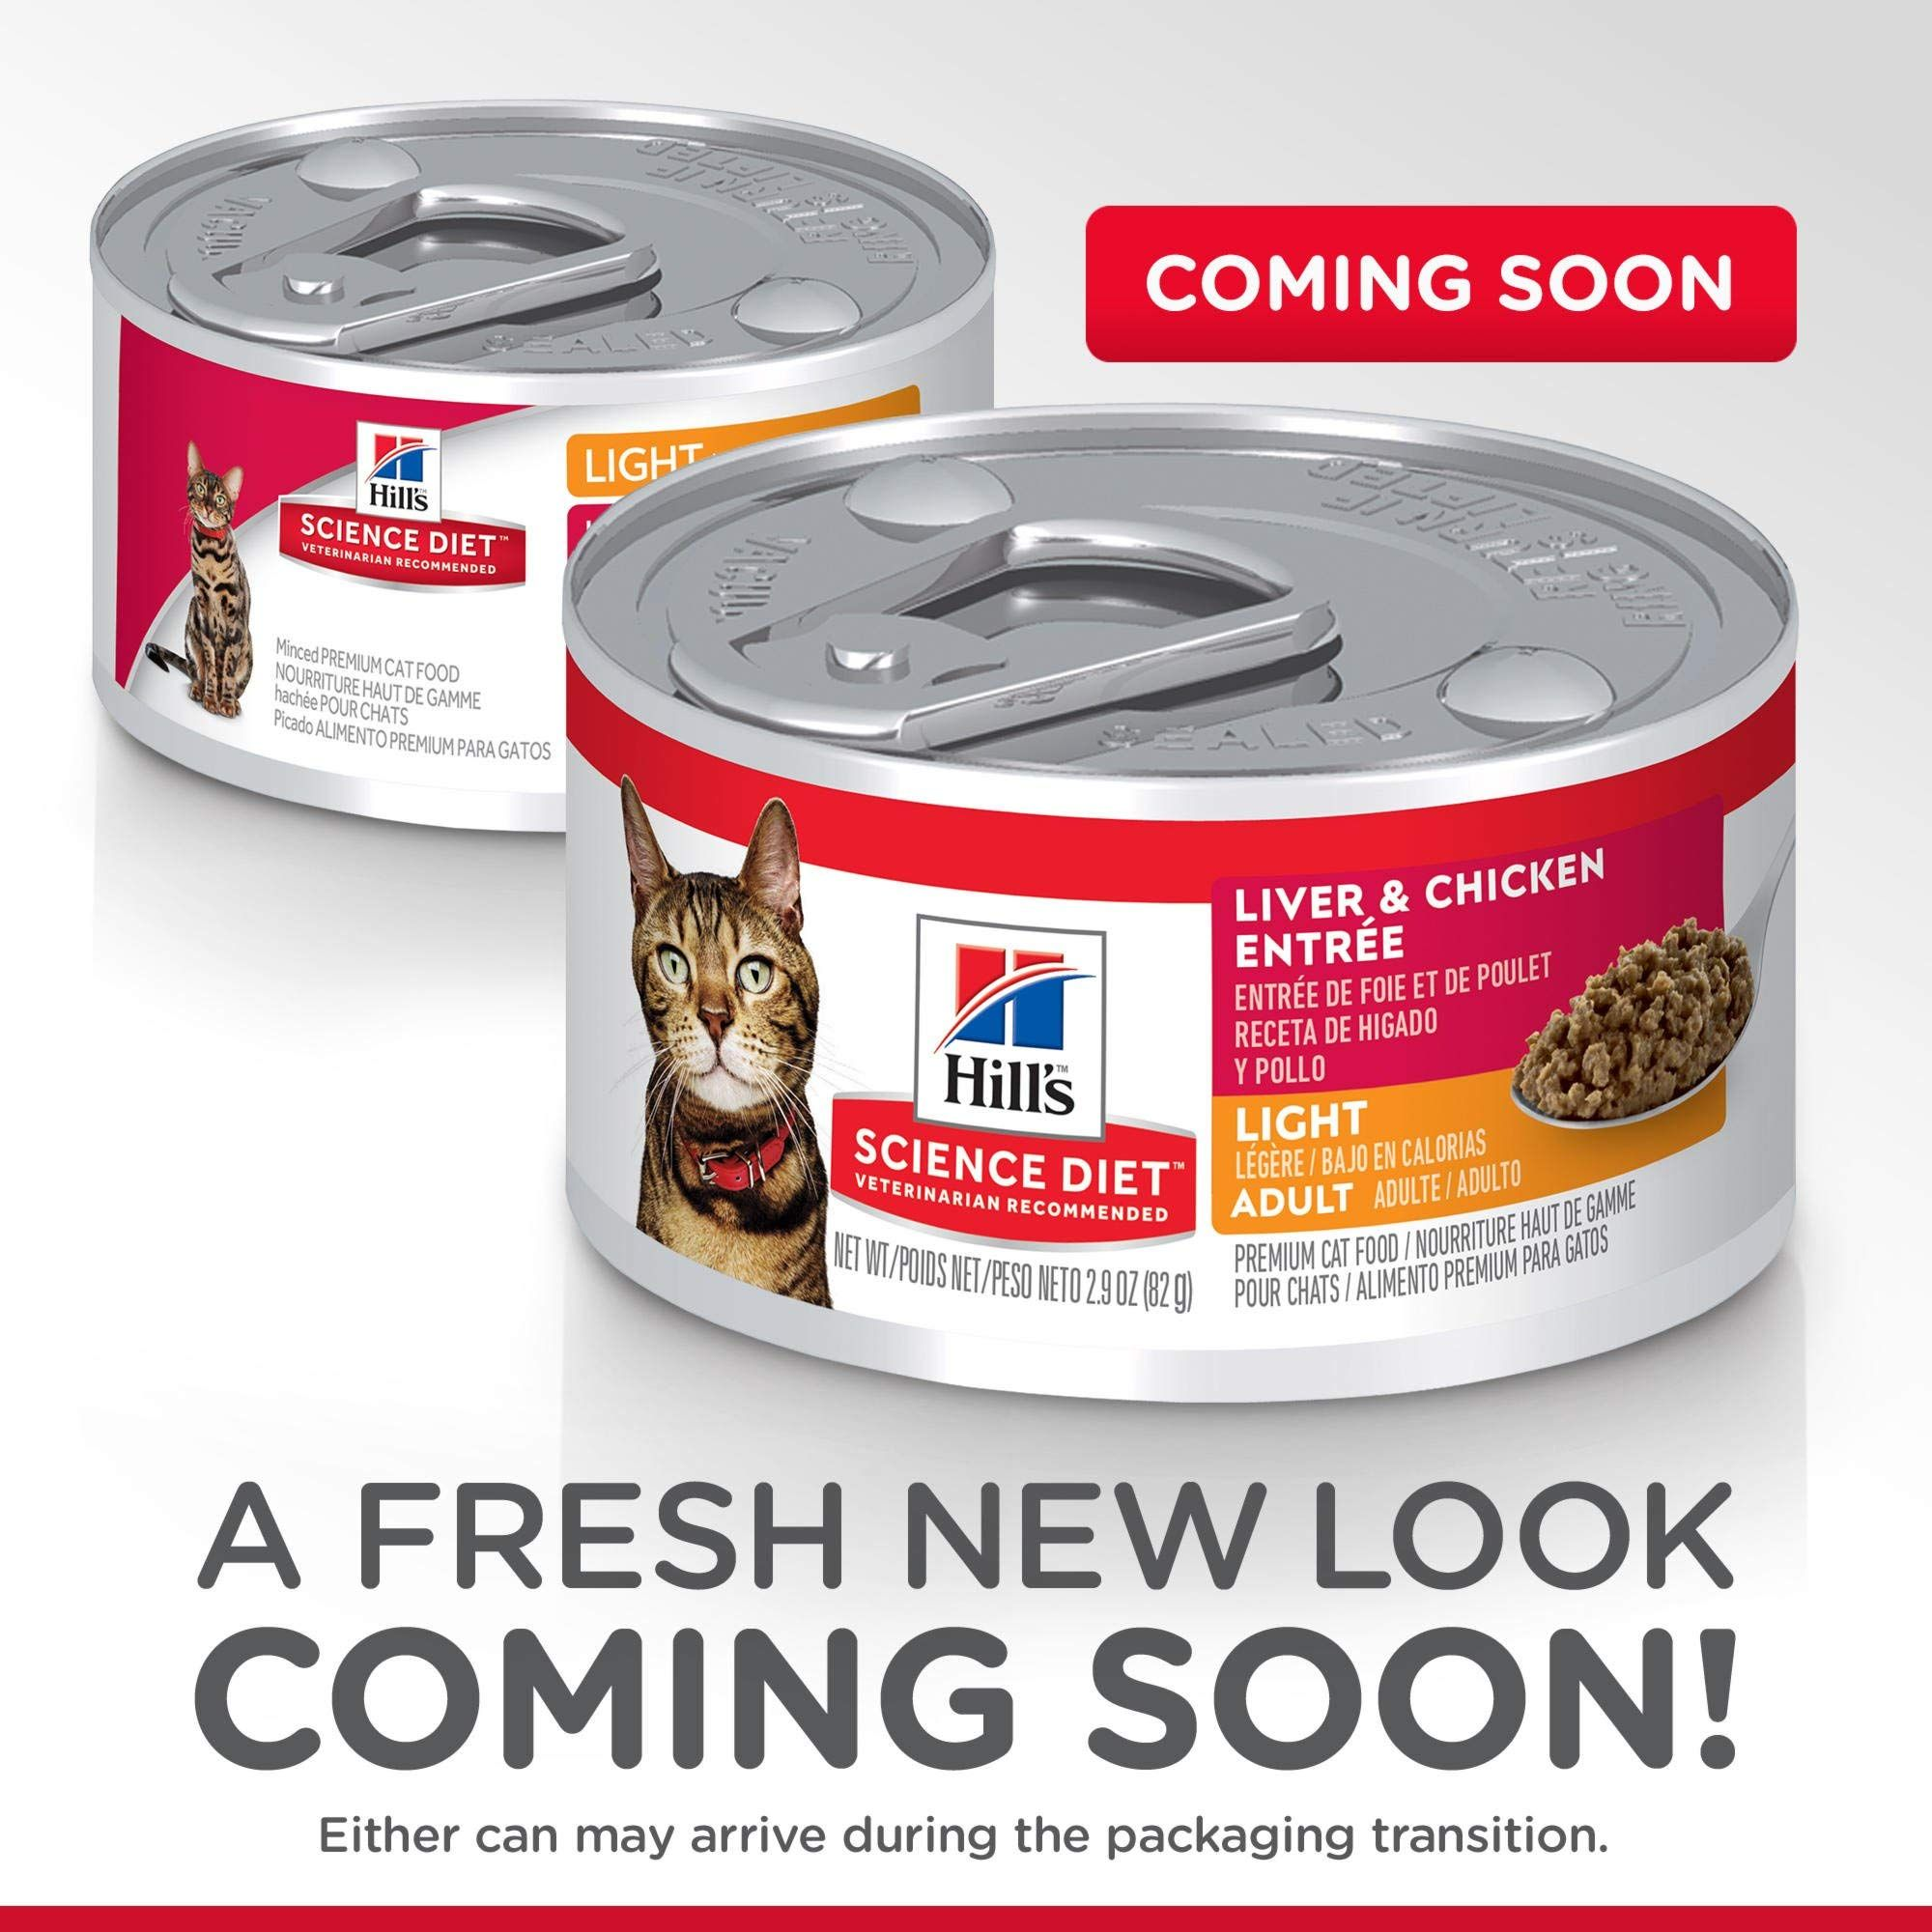 Hills Science Diet Chicken Entree In 2020 Hills Science Diet Fish Entrees Canned Cat Food